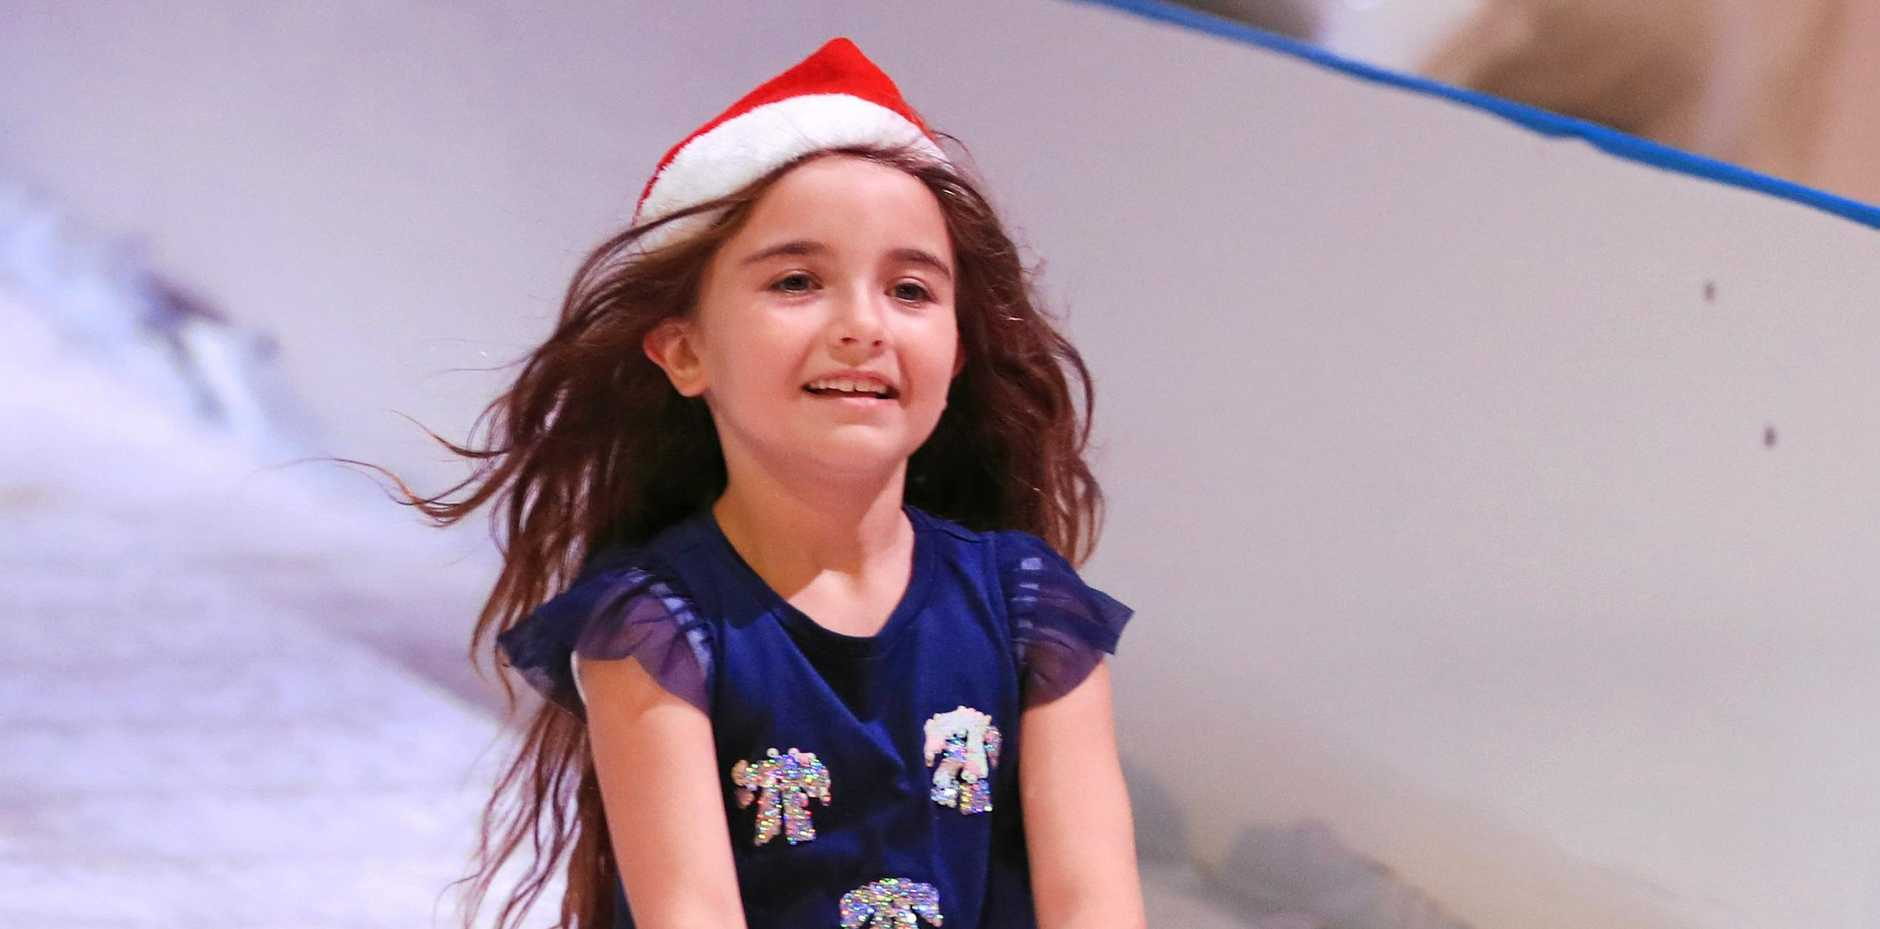 Enjoying the fun at Tweed Seagulls pop up indoor Ice Rink and White Christmas play ground ; Malina (7) takes off on the ice run toboggan.